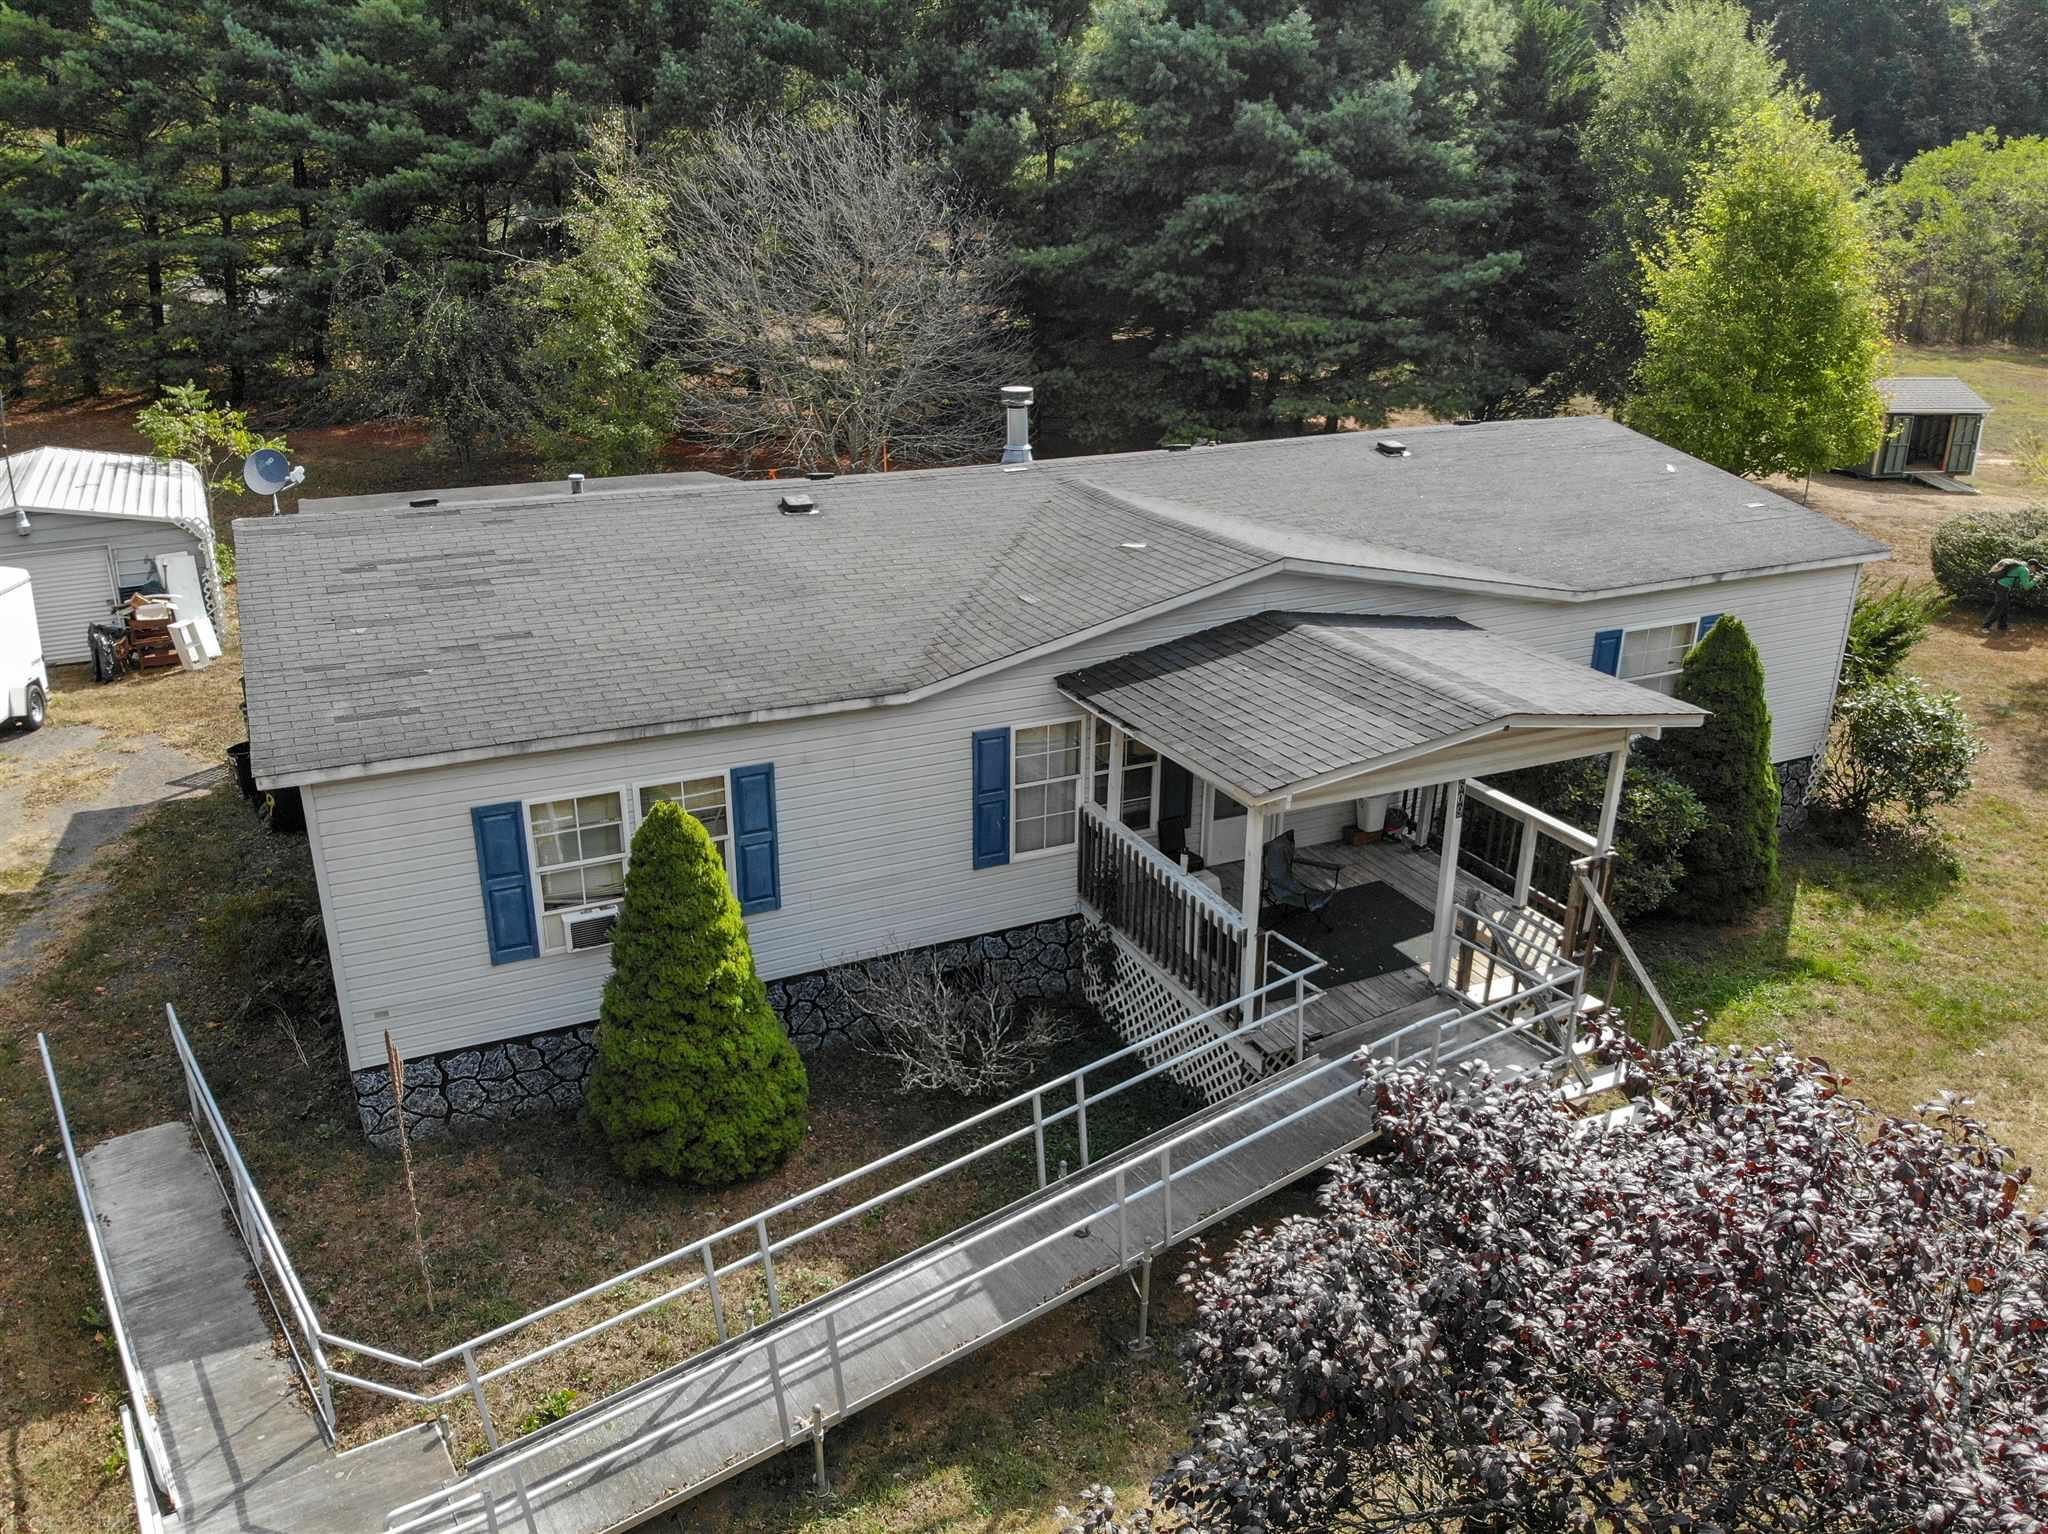 Nice double wide on a large lot. Open floor plan. Close to Pearisburg, Blacksburg and Princeton. This would be a great area for those looking to get away from the hustle of a busy life. Giles County offers so much for the outdoor enthusiast. Make plans to see today.